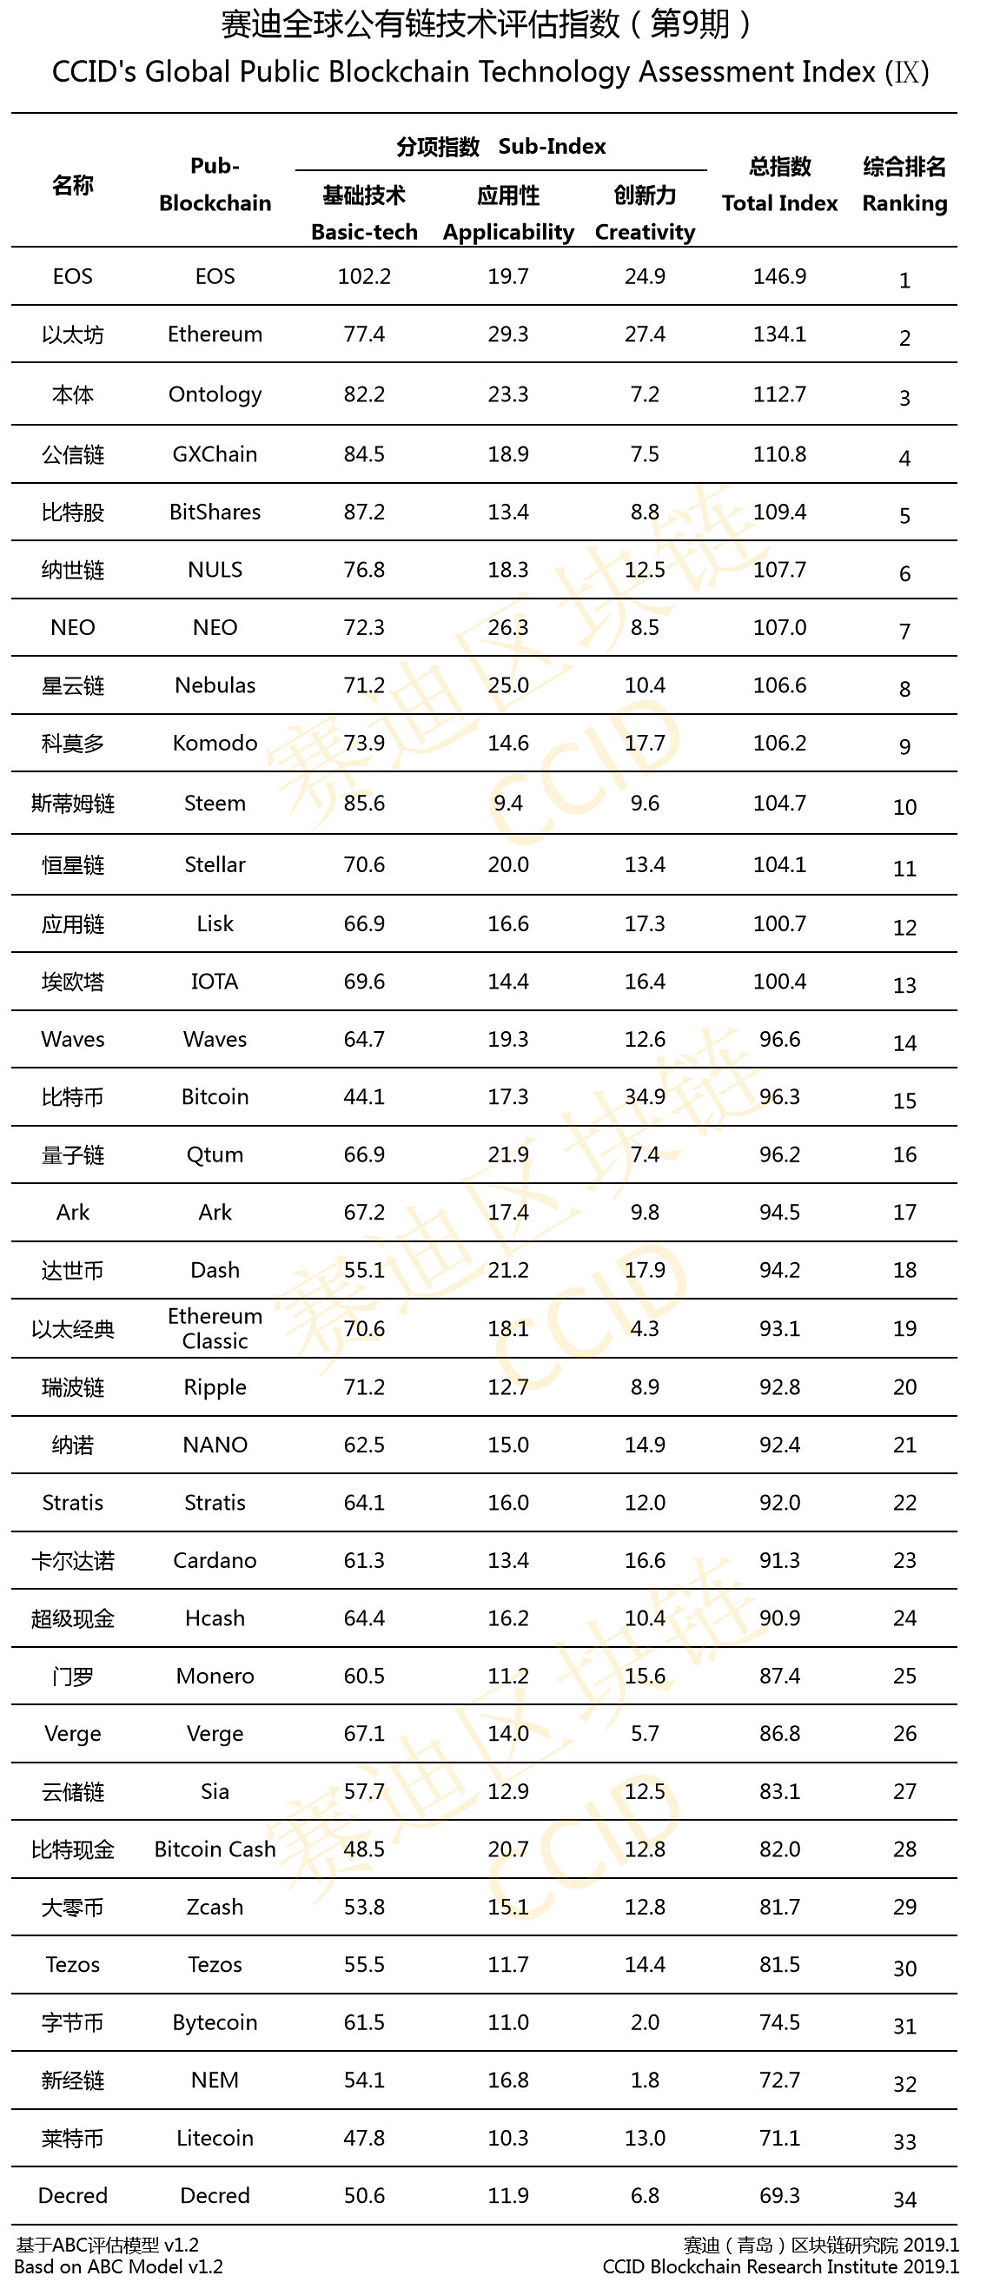 Bitcoin Climbs in China's First Crypto Ranking of 2019